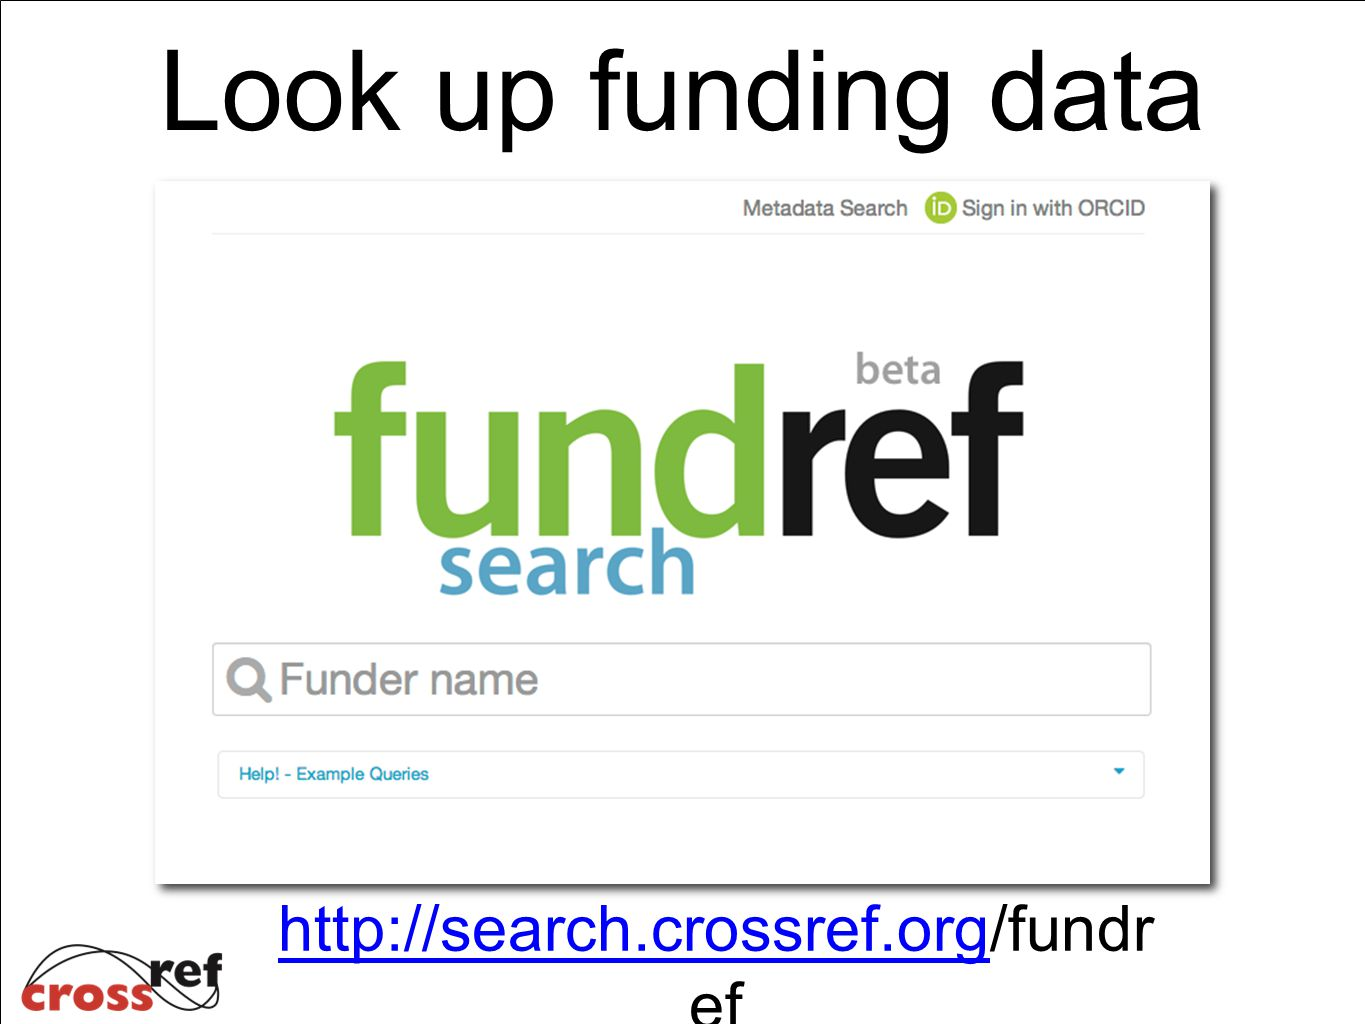 Look up funding data http://search.crossref.orghttp://search.crossref.org/fundr ef